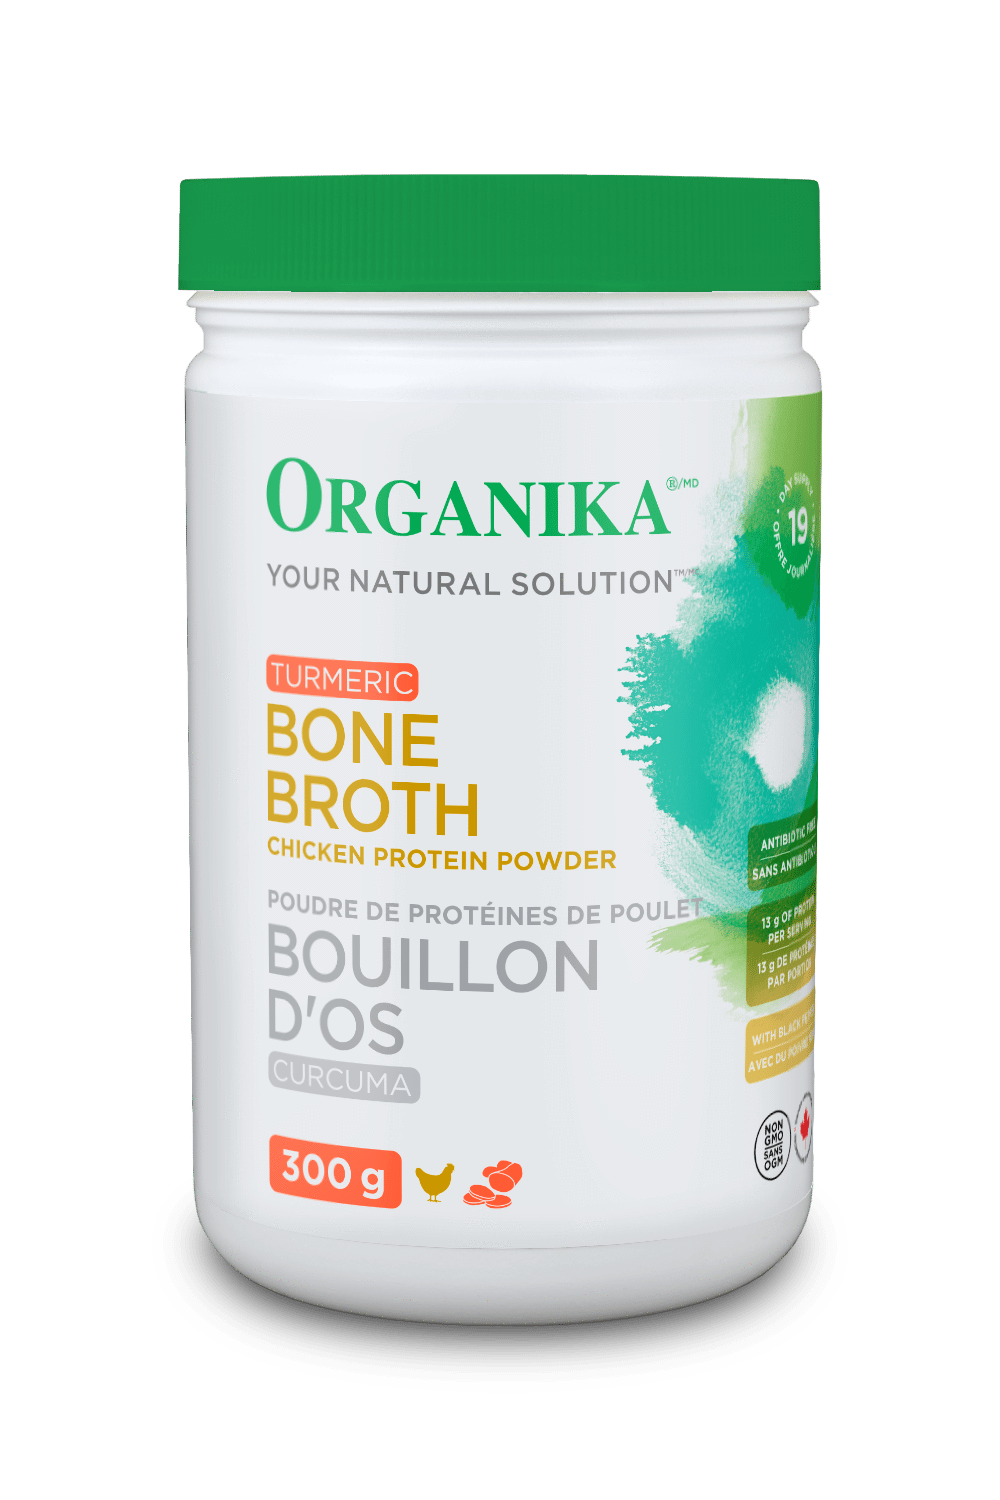 Supplements & Vitamins - Organika - Bone Broth Turmeric Protein Powder, 300g